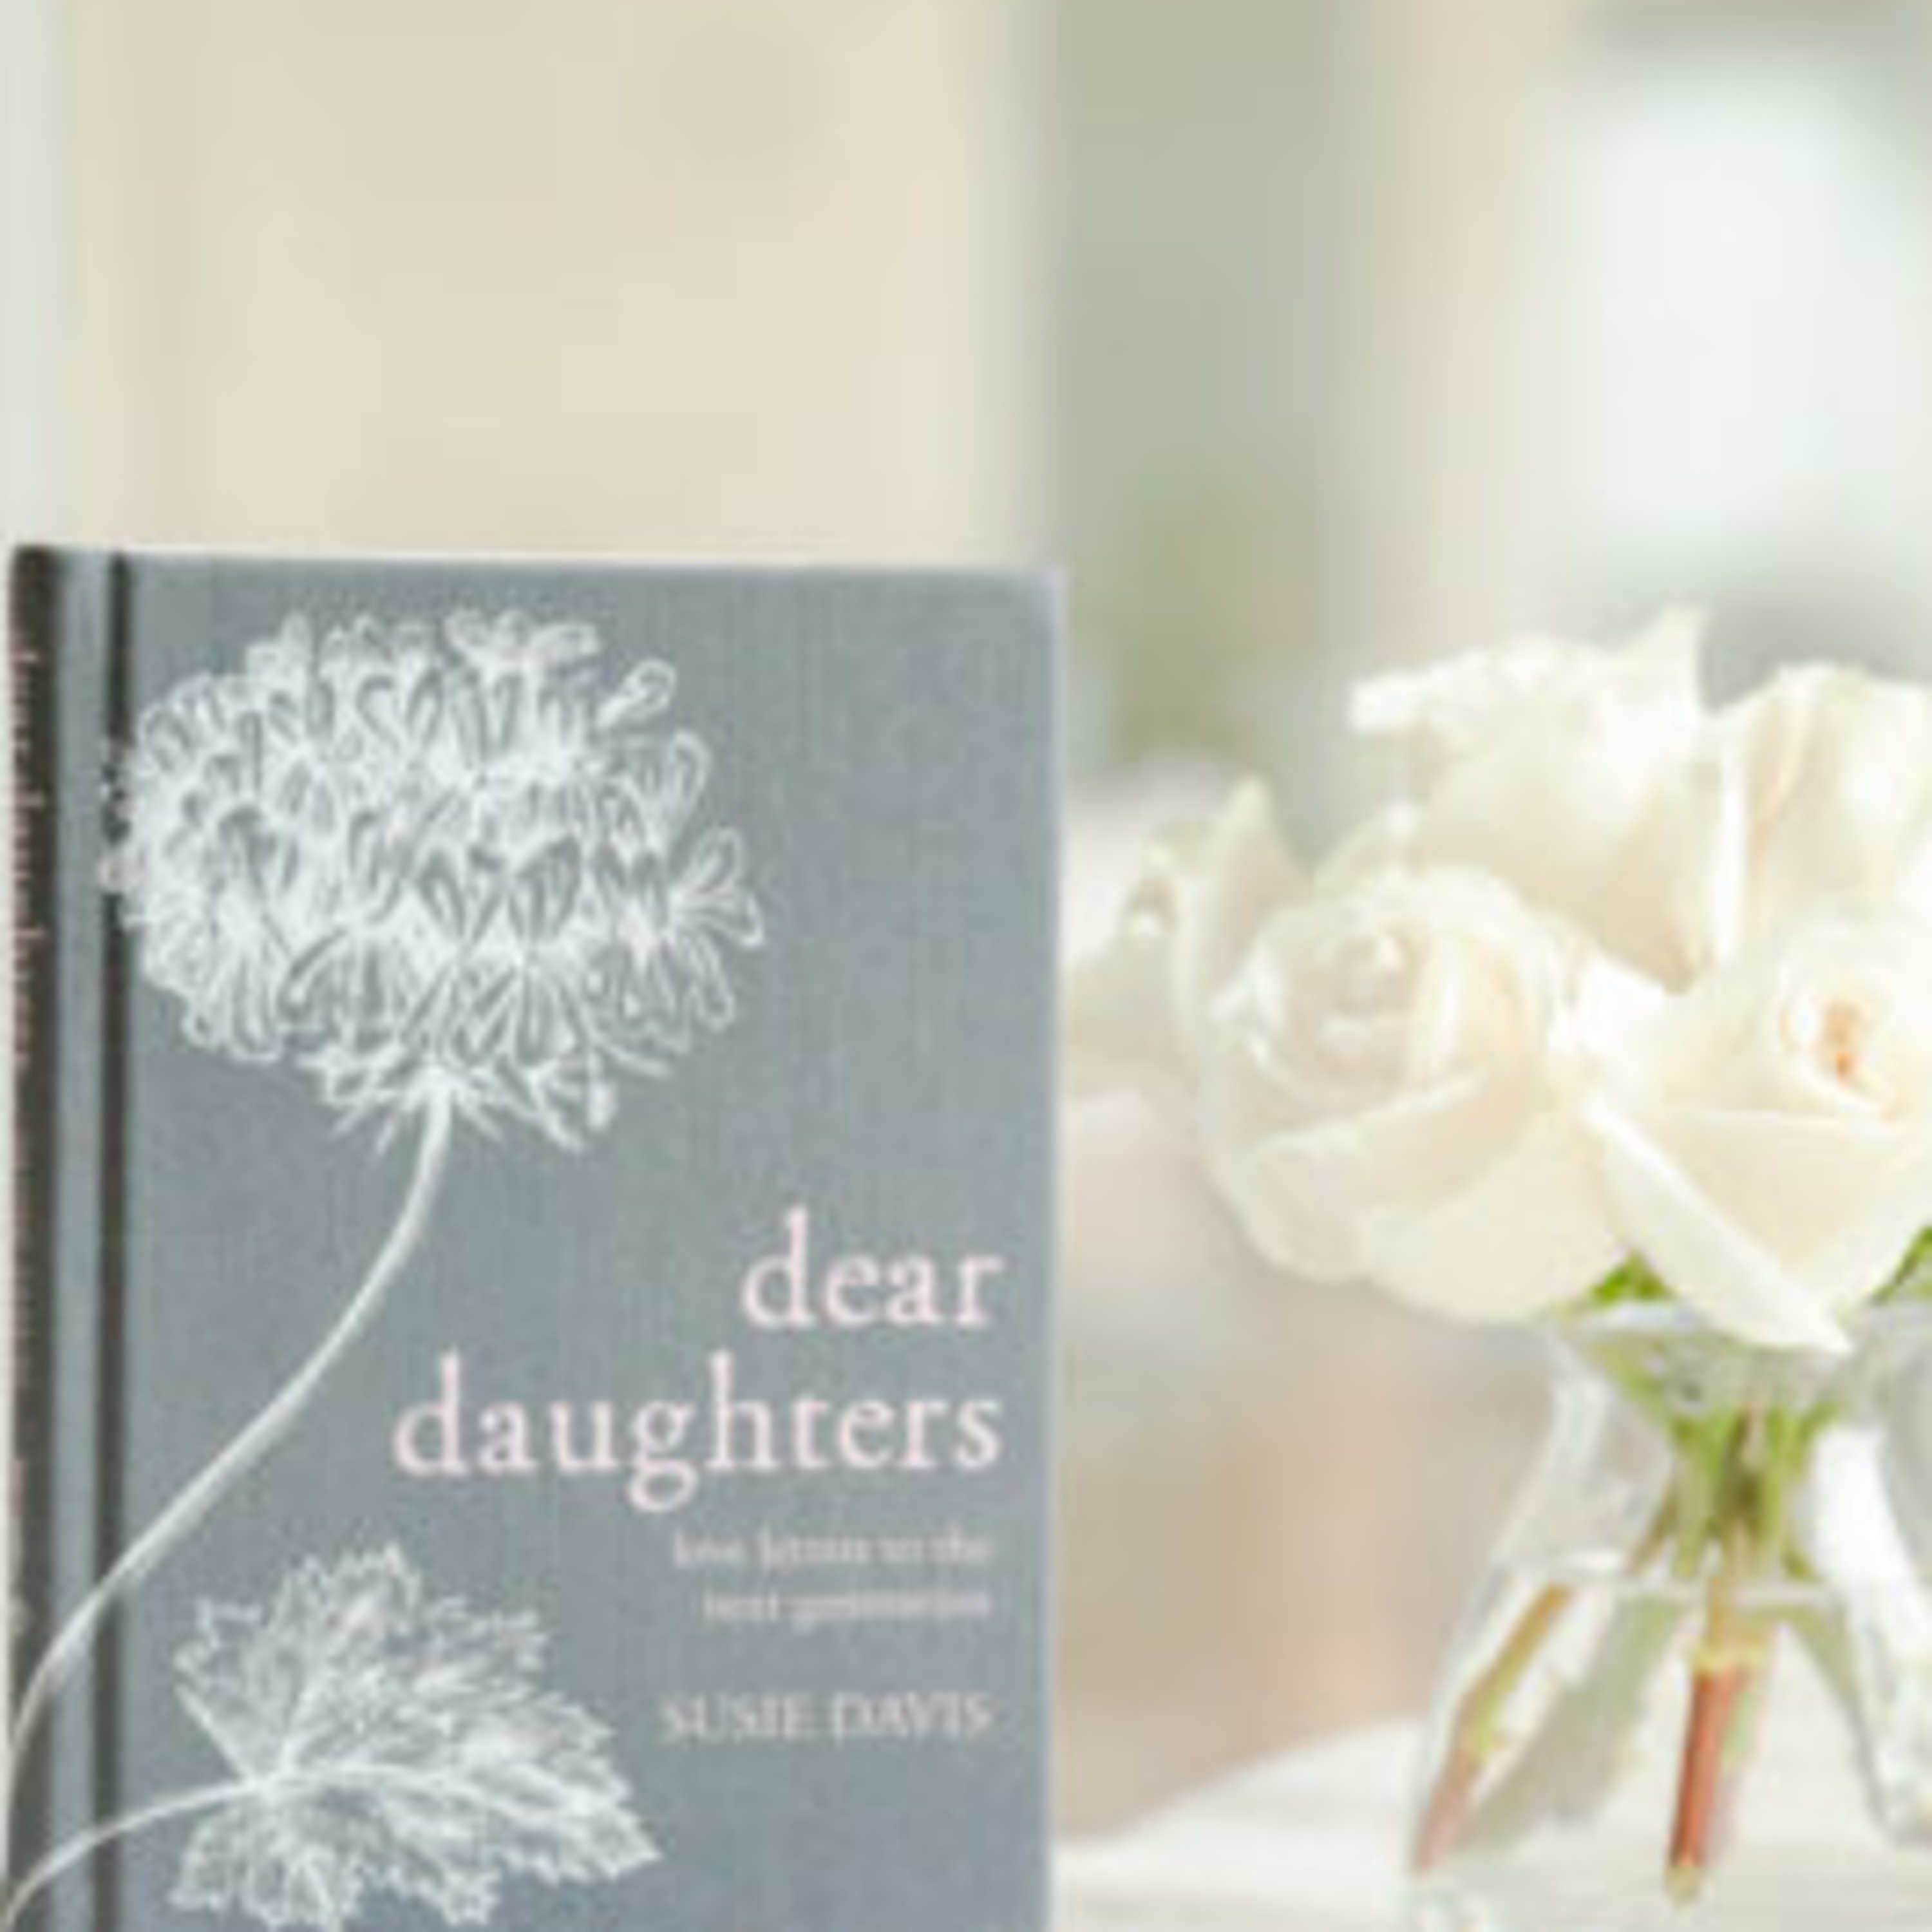 Susie Davis, Author of Dear Daughters: Love Letters to the Next Generation